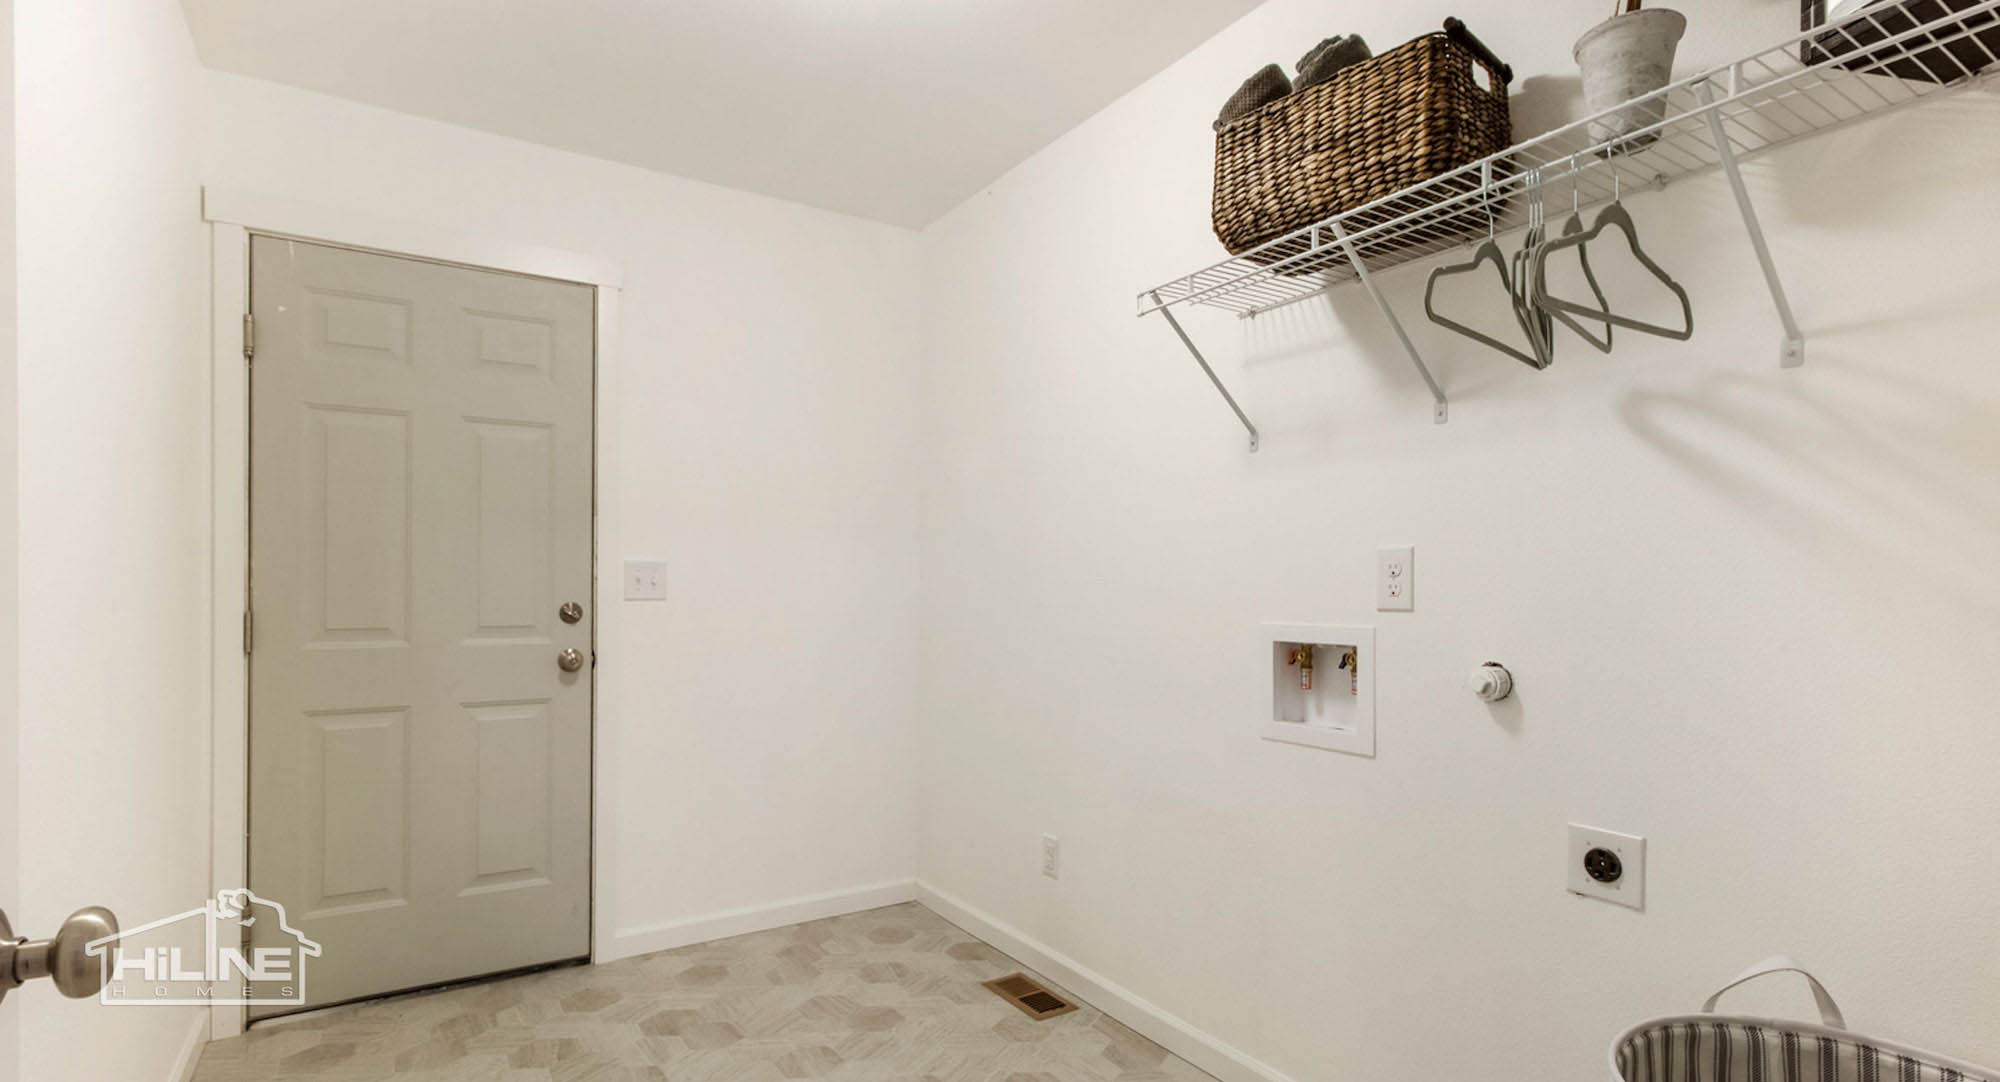 HiLine Home Plan 1491 Laundry Room